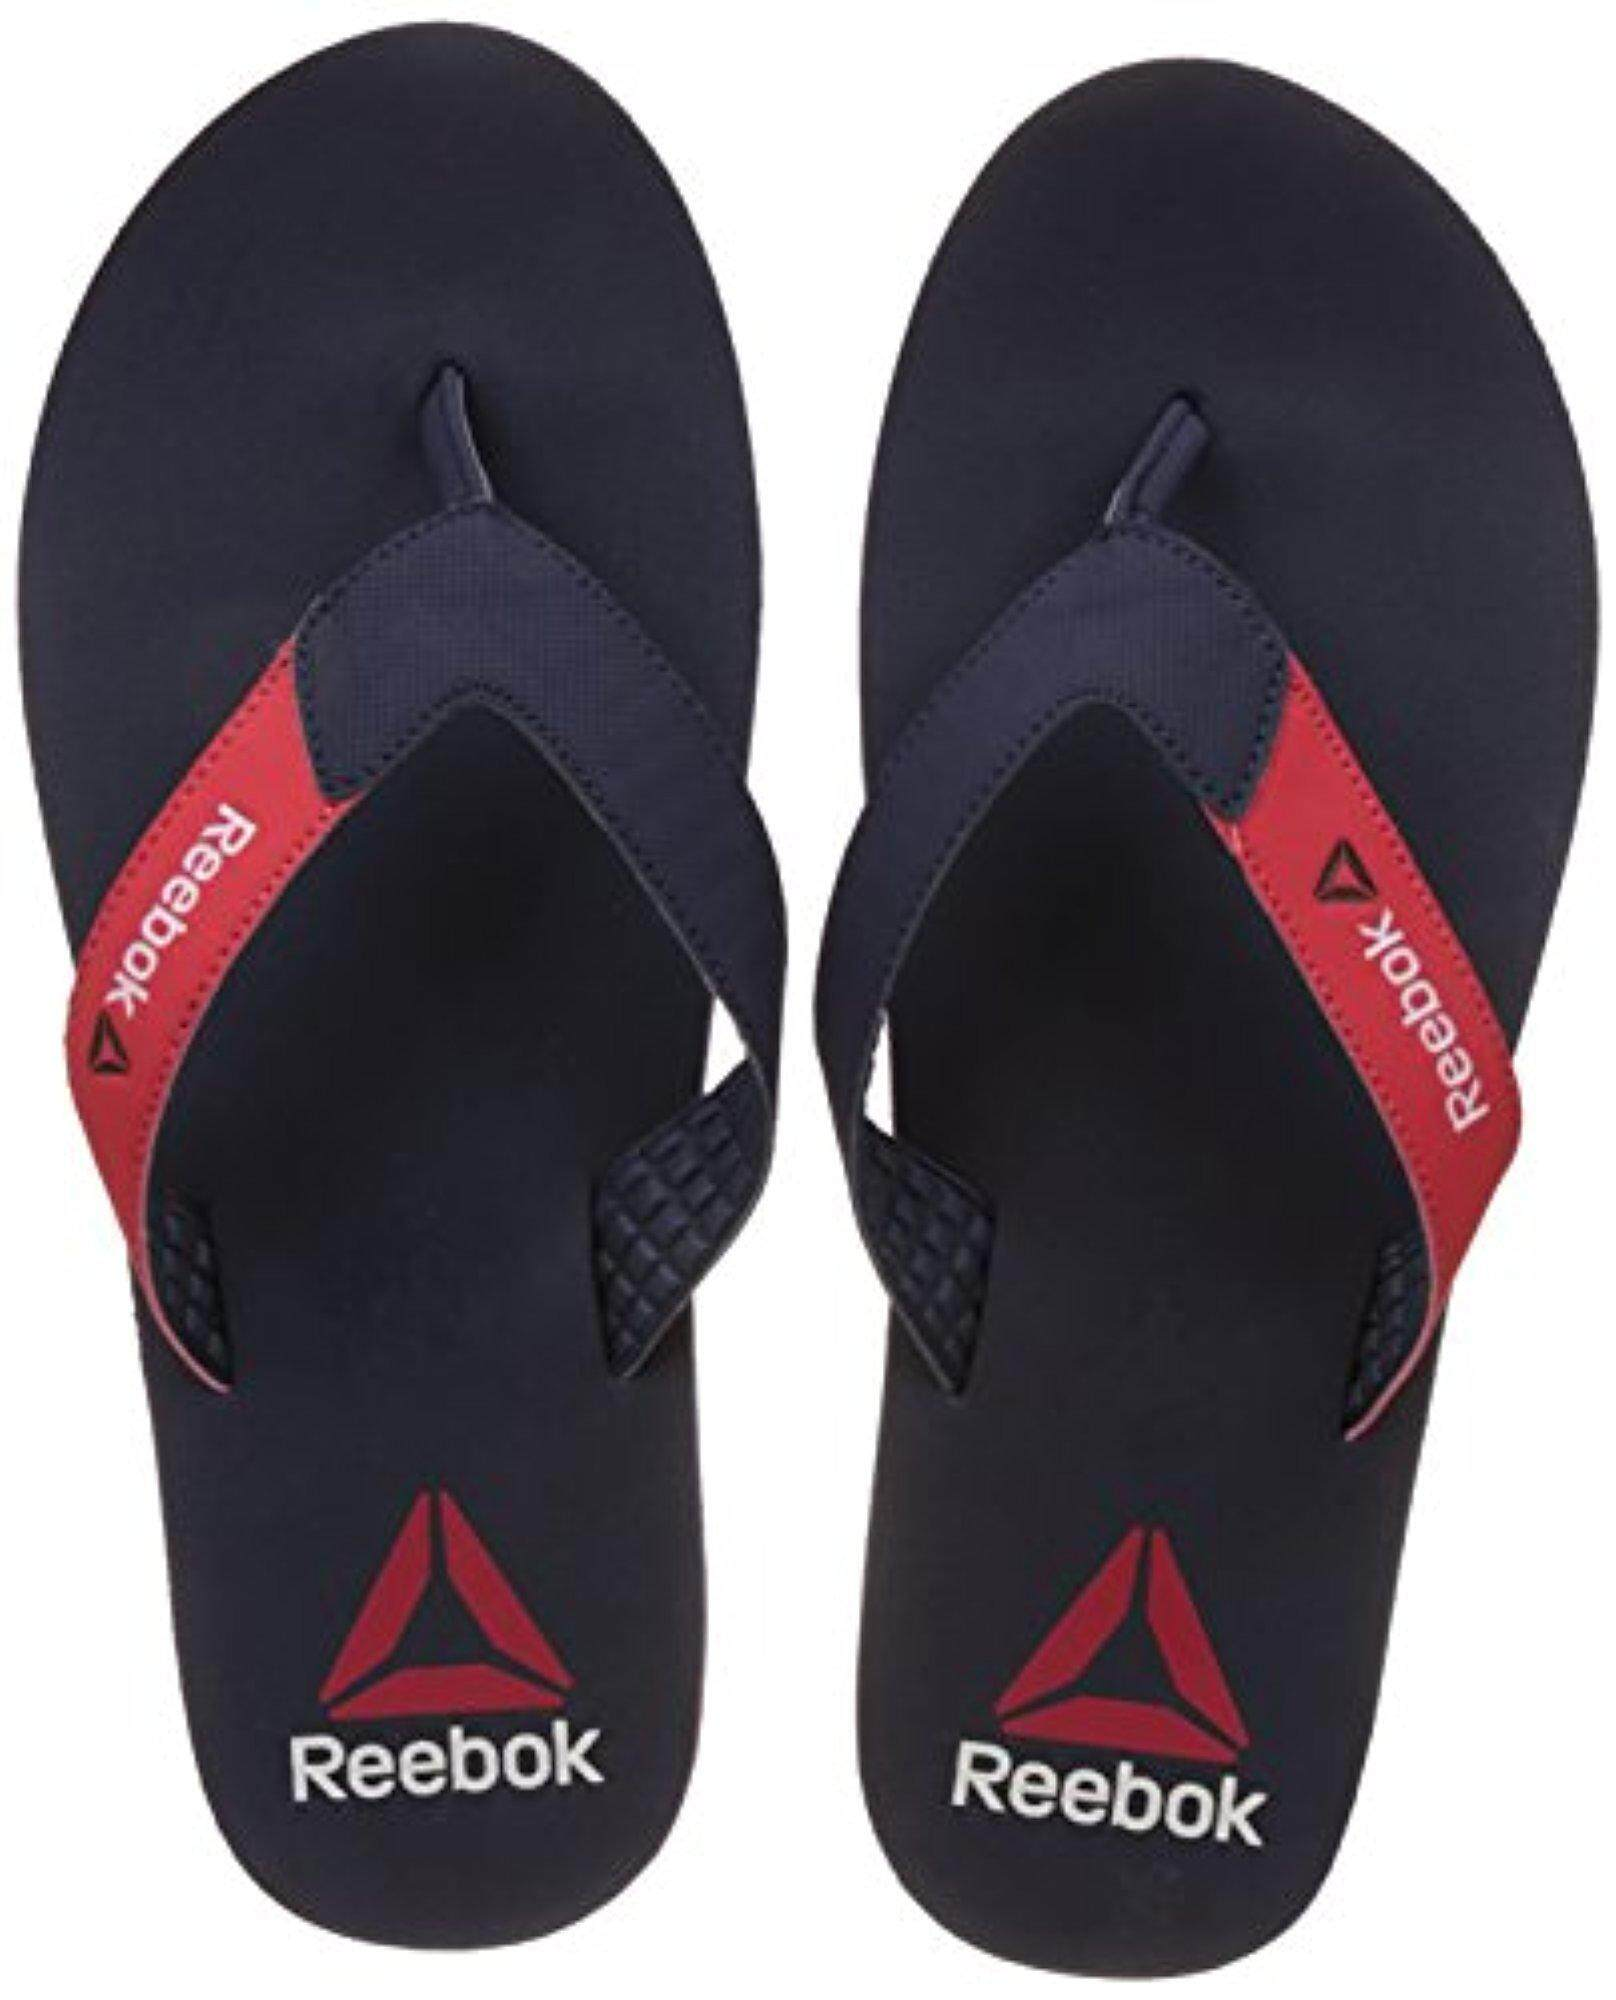 Hot Spesial Sandal Reebok Breeze Flip Iv Lp Original 0mtfll - Wikie ... a77e8c058e